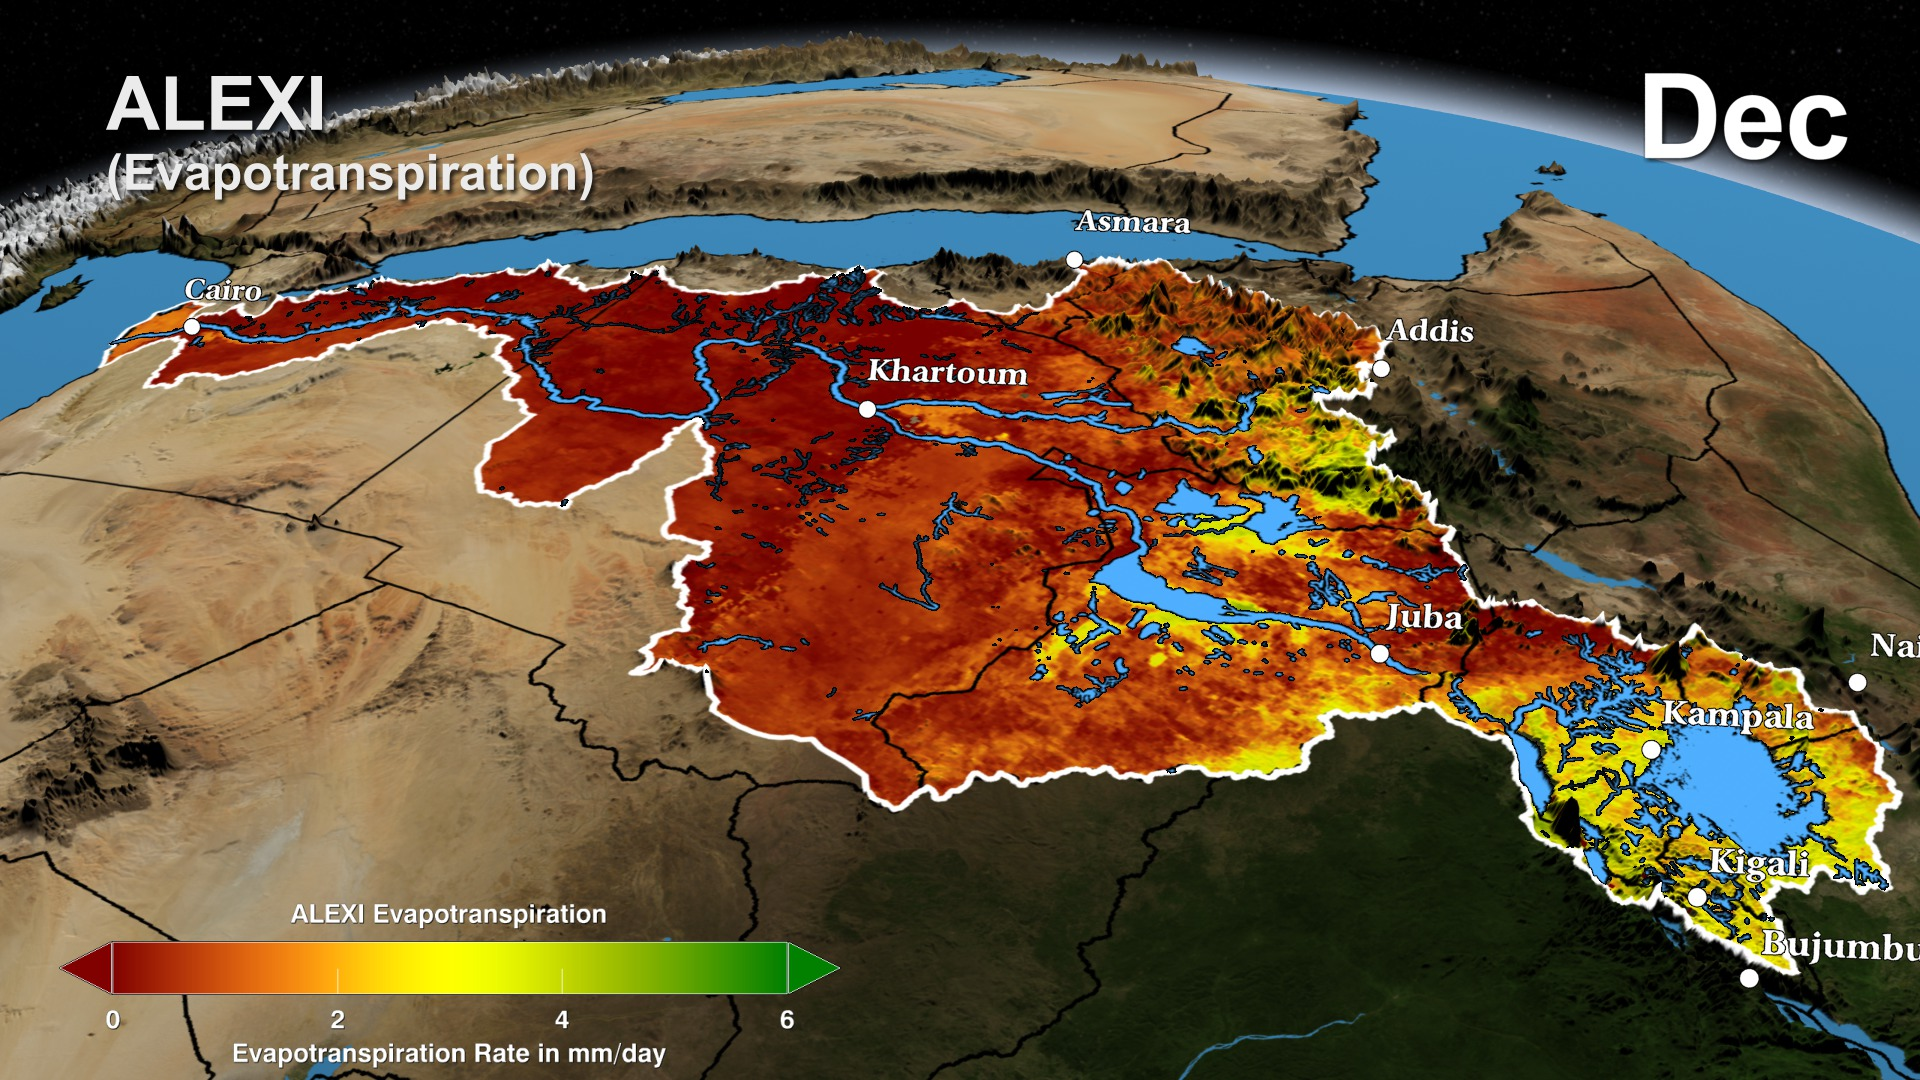 SVS The Distributed Water Balance of the Nile Basin